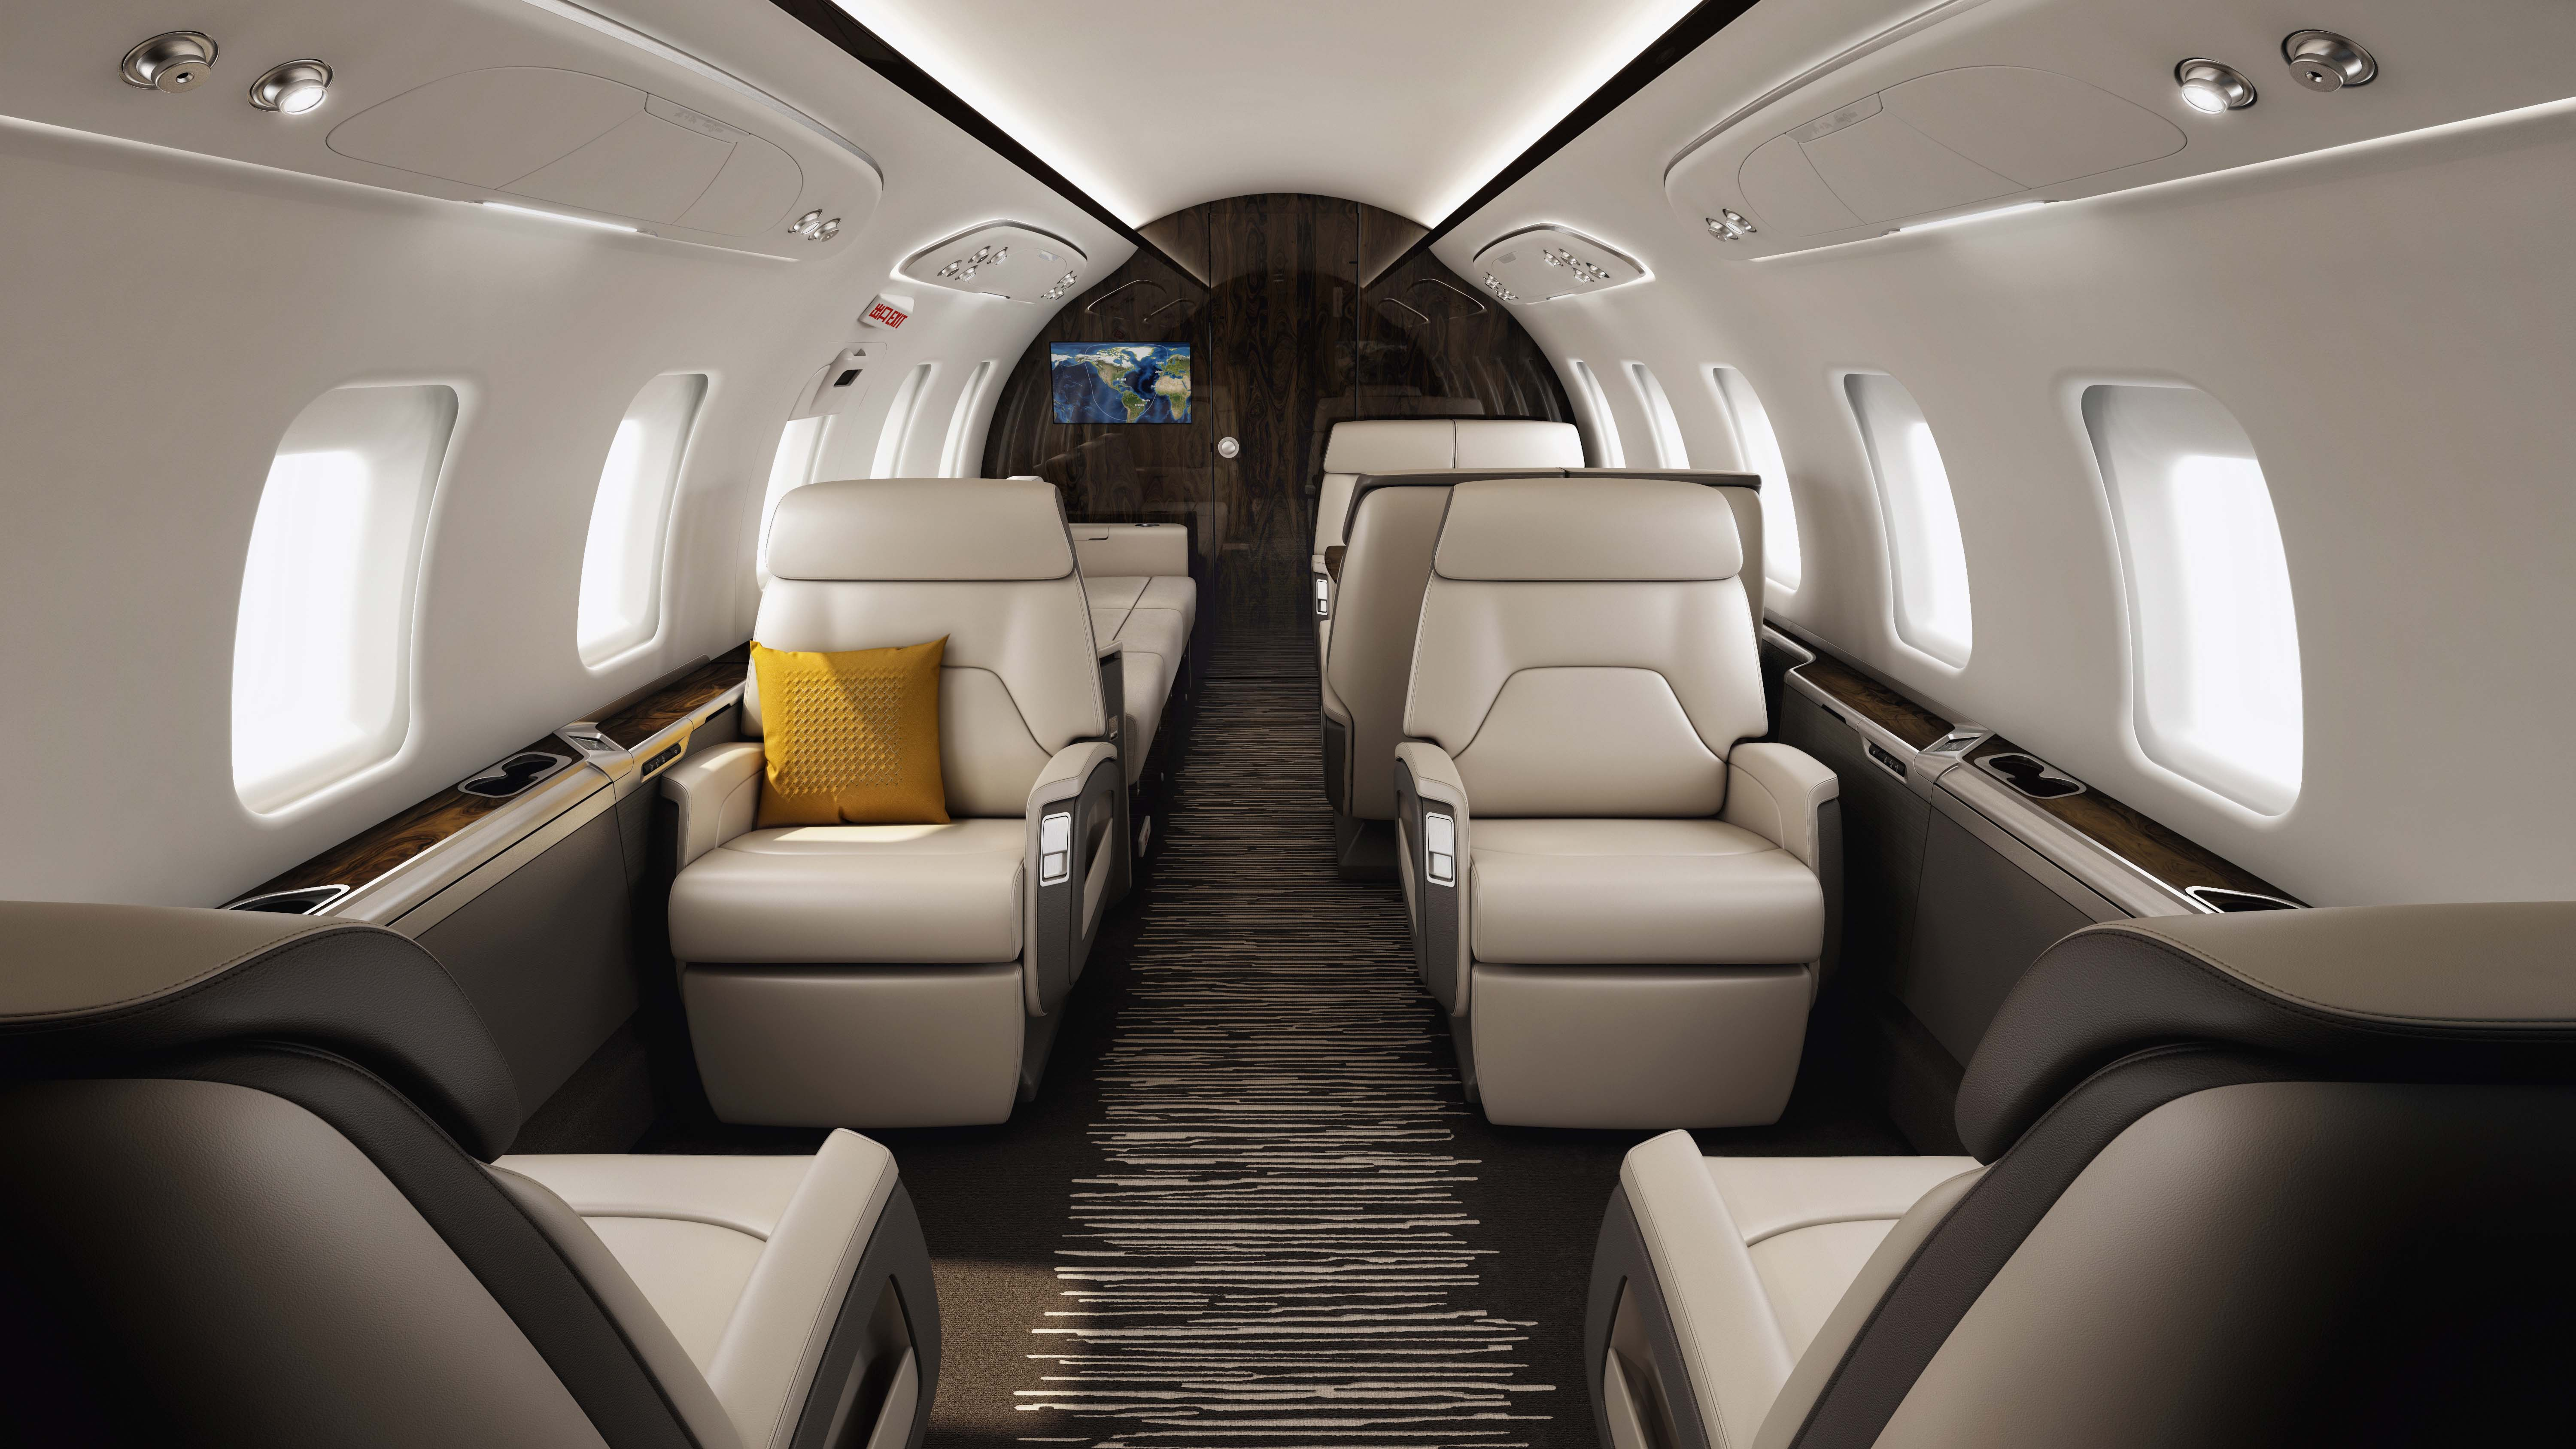 Bombardier Challenger 650 large-cabin private business jet